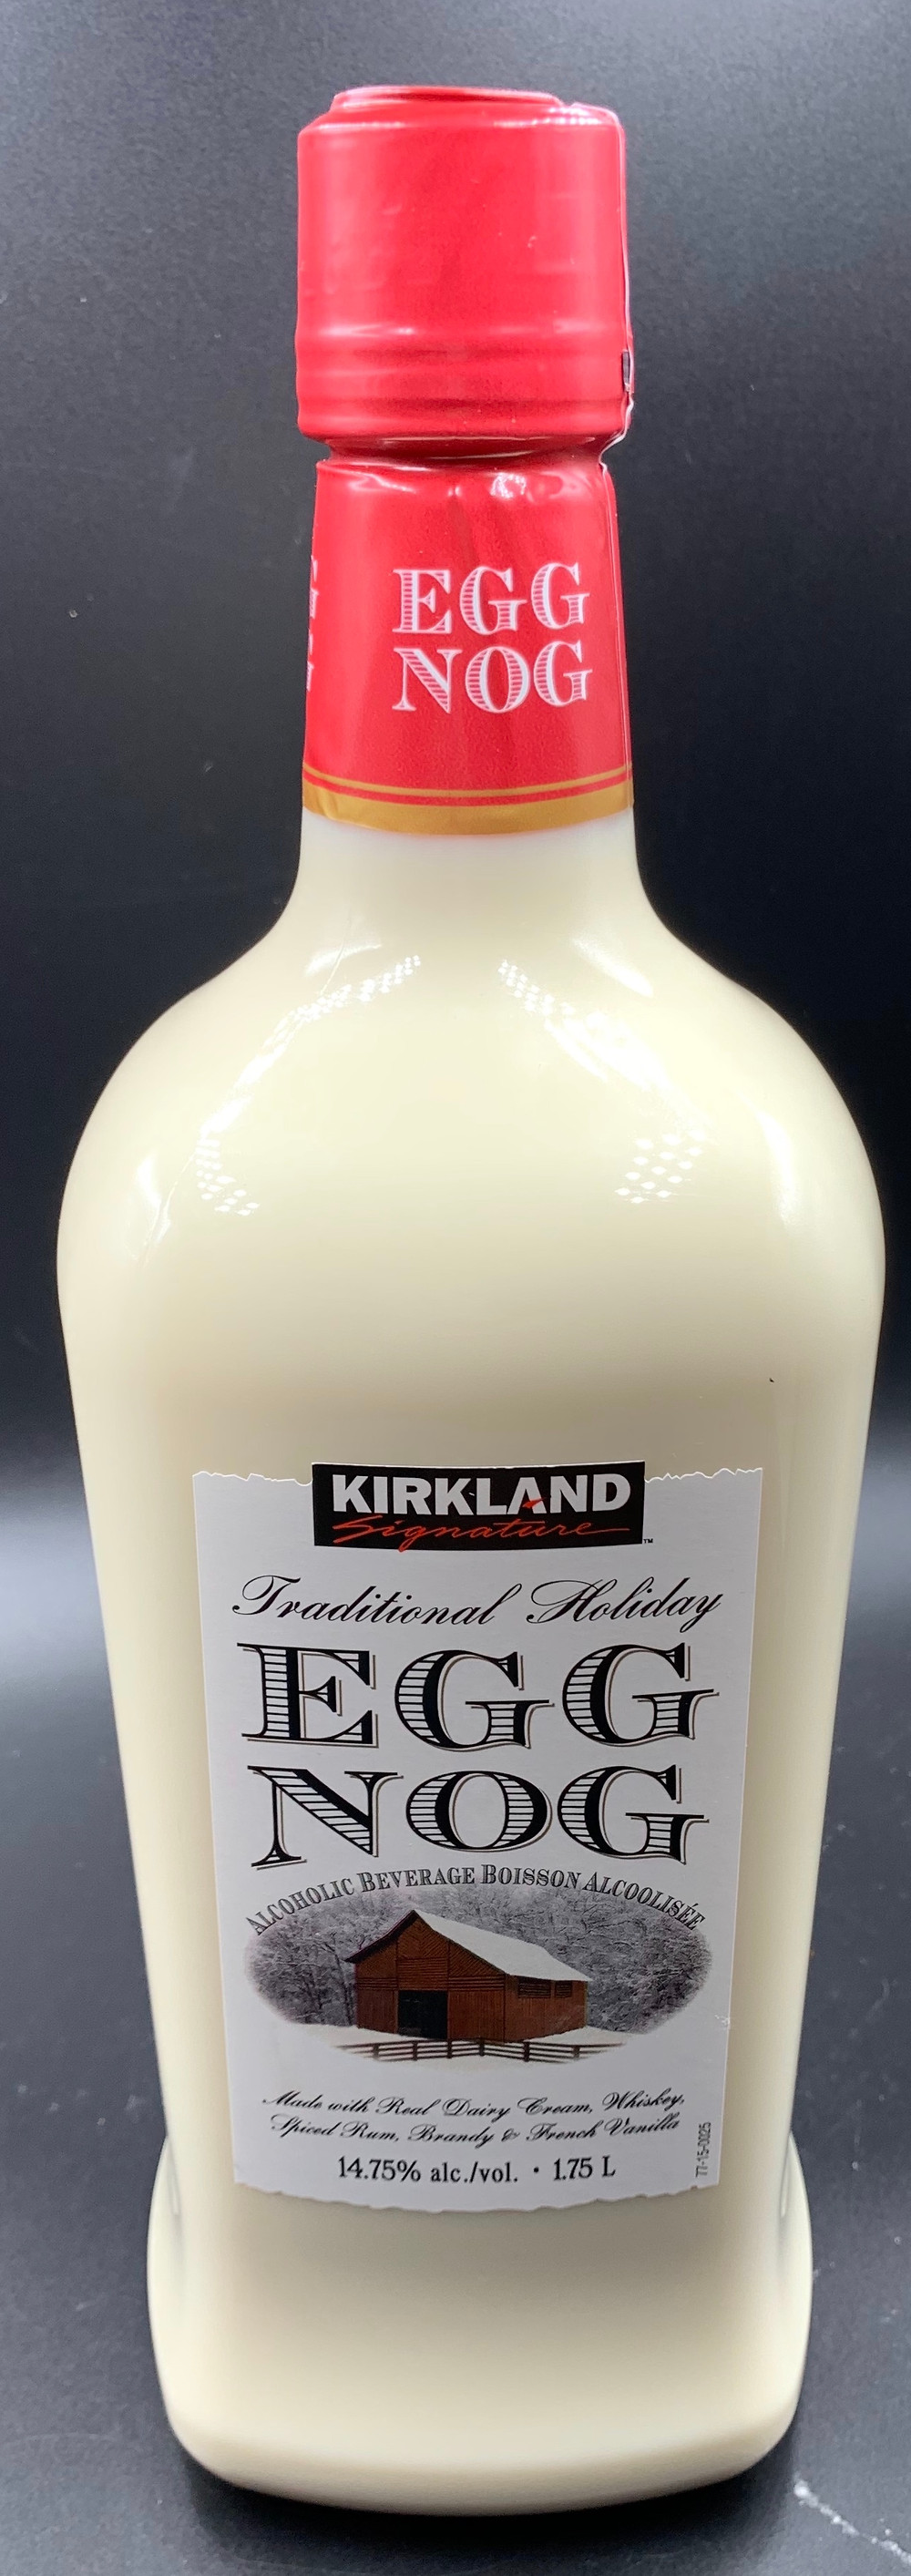 Costco Kirkland Signature Traditional Holiday Egg Nog